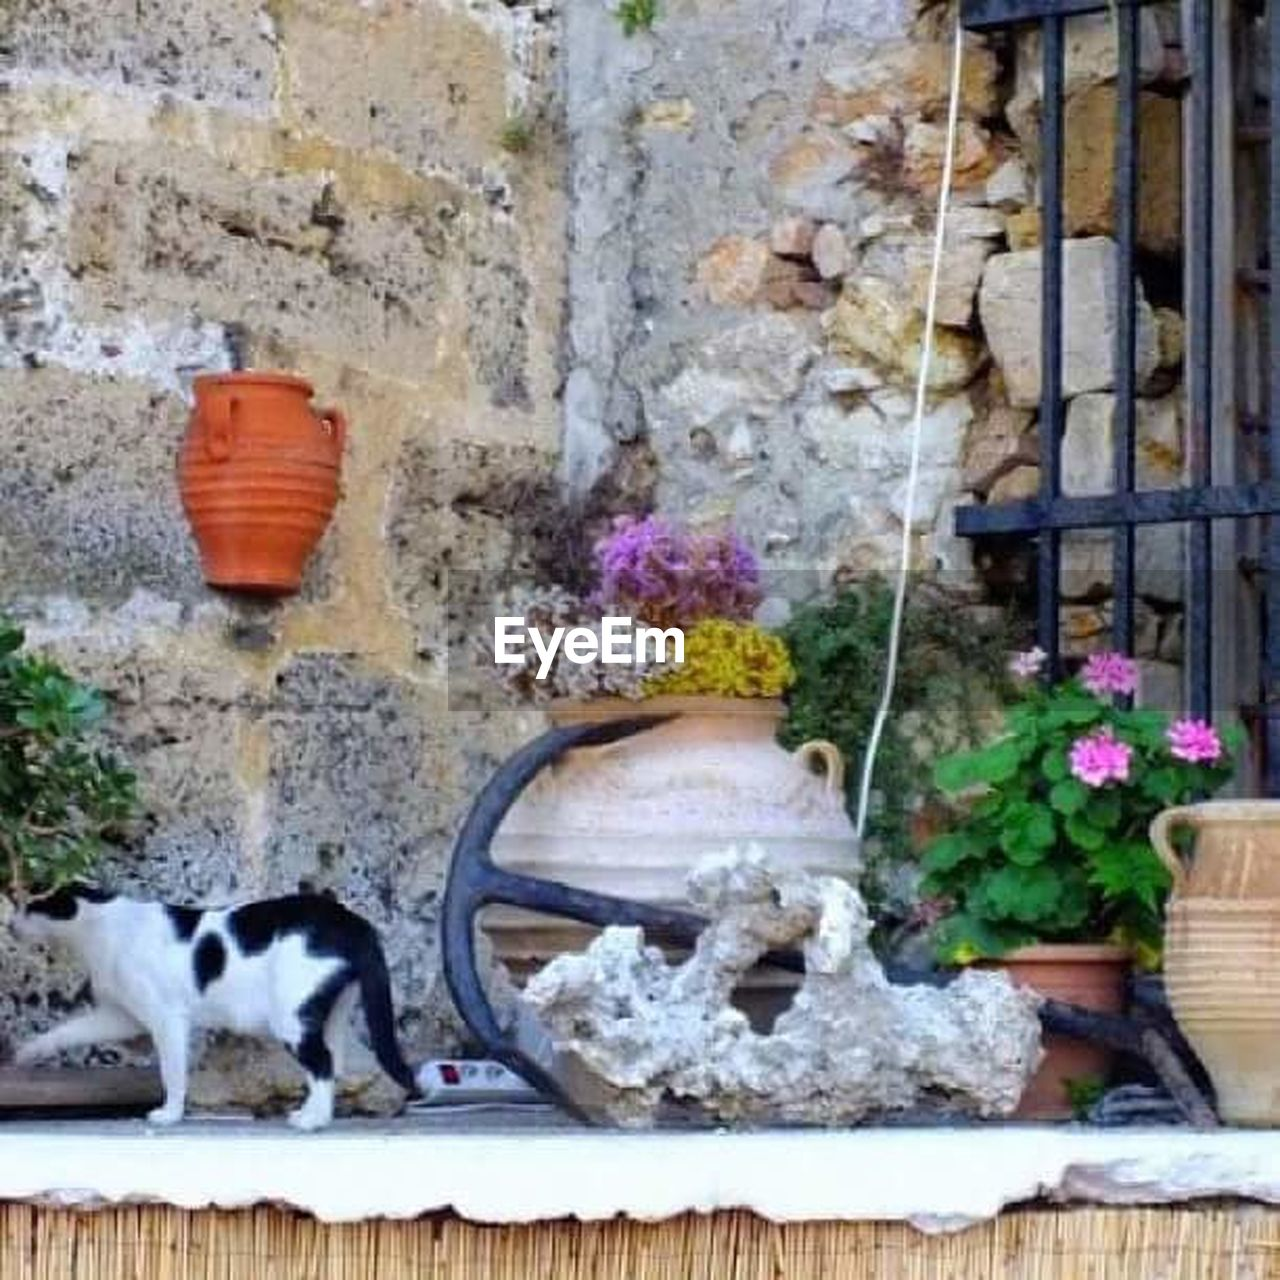 pets, domestic animals, one animal, animal themes, domestic cat, no people, day, mammal, flower, built structure, dog, outdoors, feline, architecture, building exterior